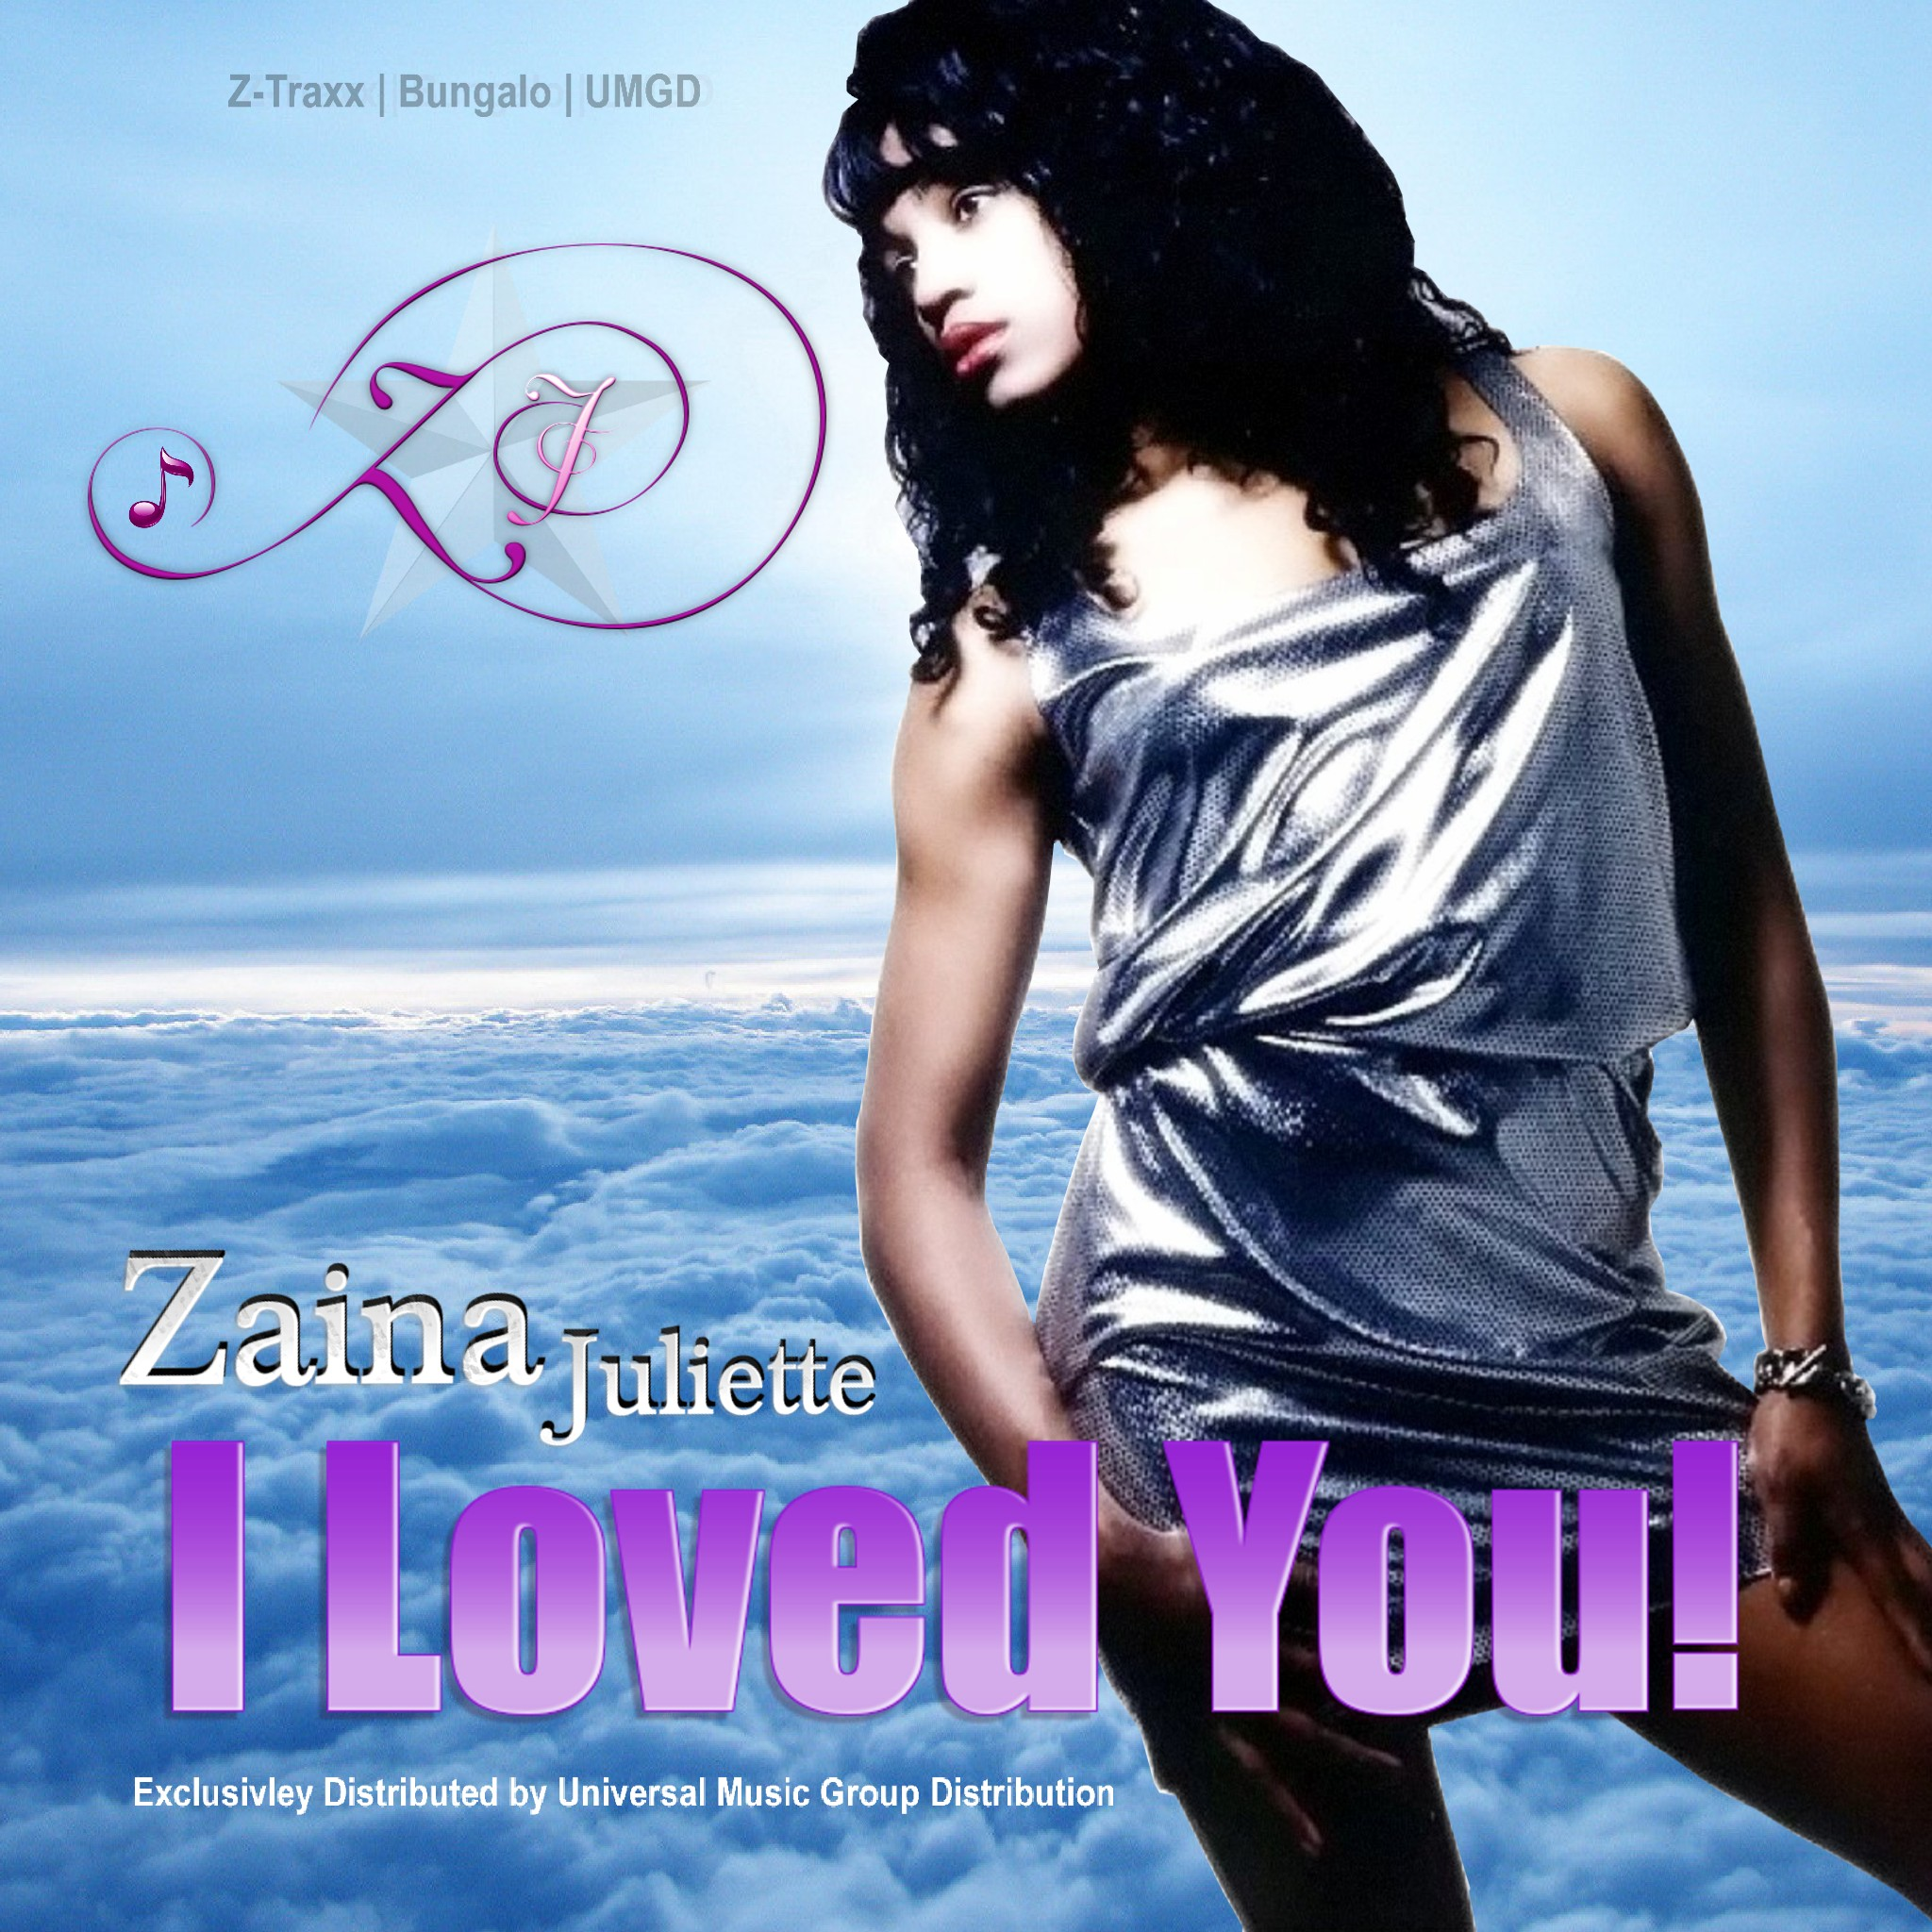 Zana+1+-CD+Cover+i+loved+you+444.jpg